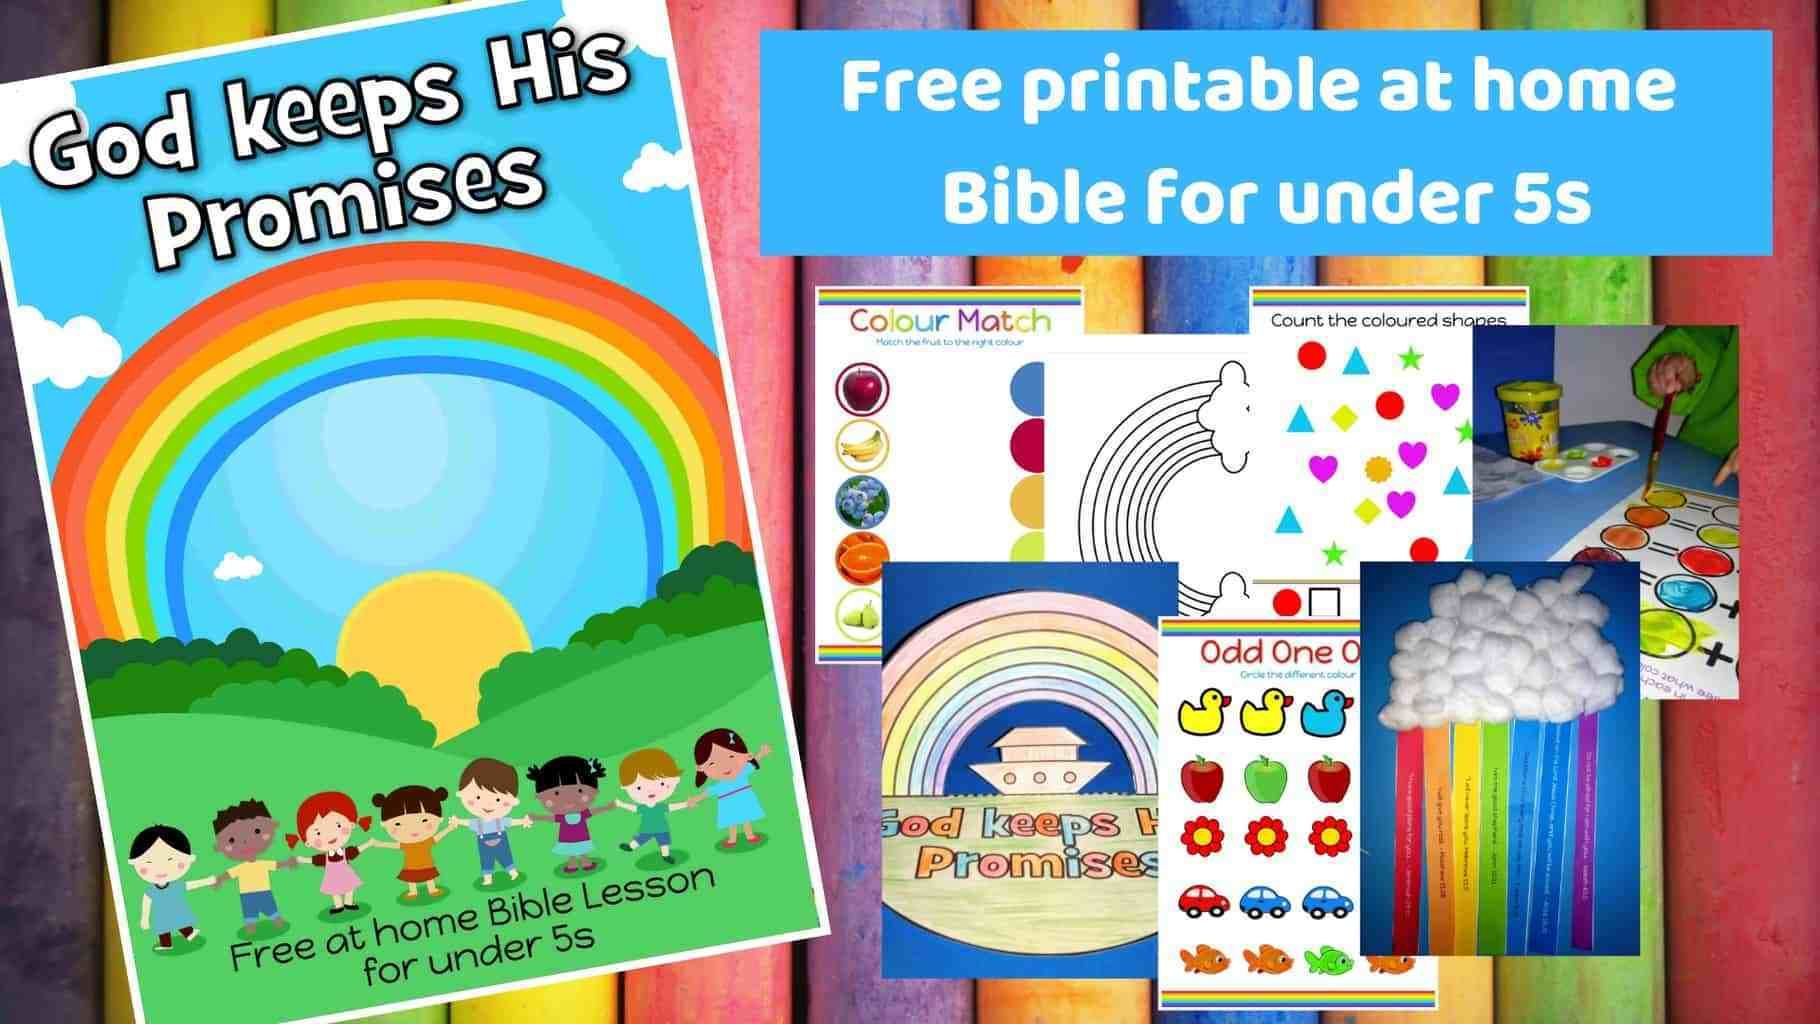 God Keeps His Promises Free Printable Bible Lesson For